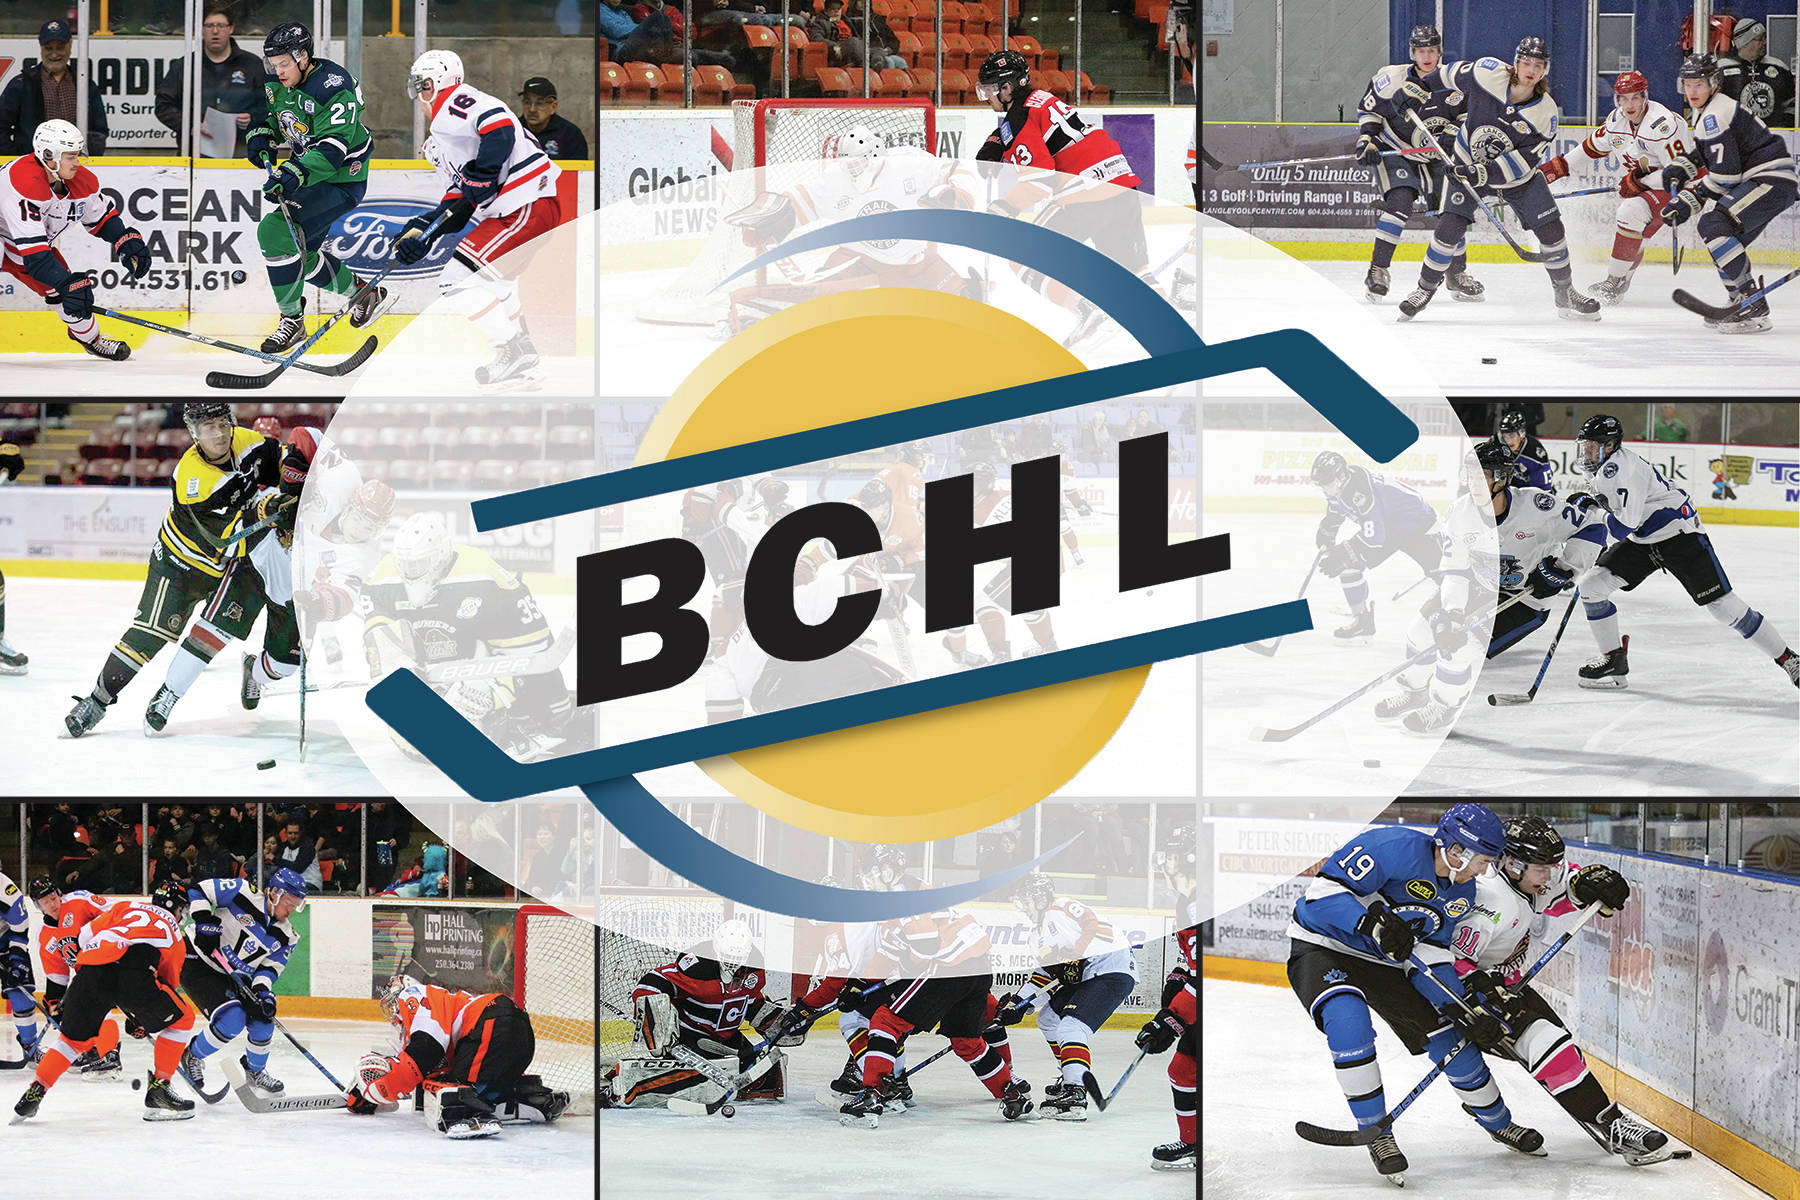 BCHL Today: Lewis speaks and Cooper commits to Colonials